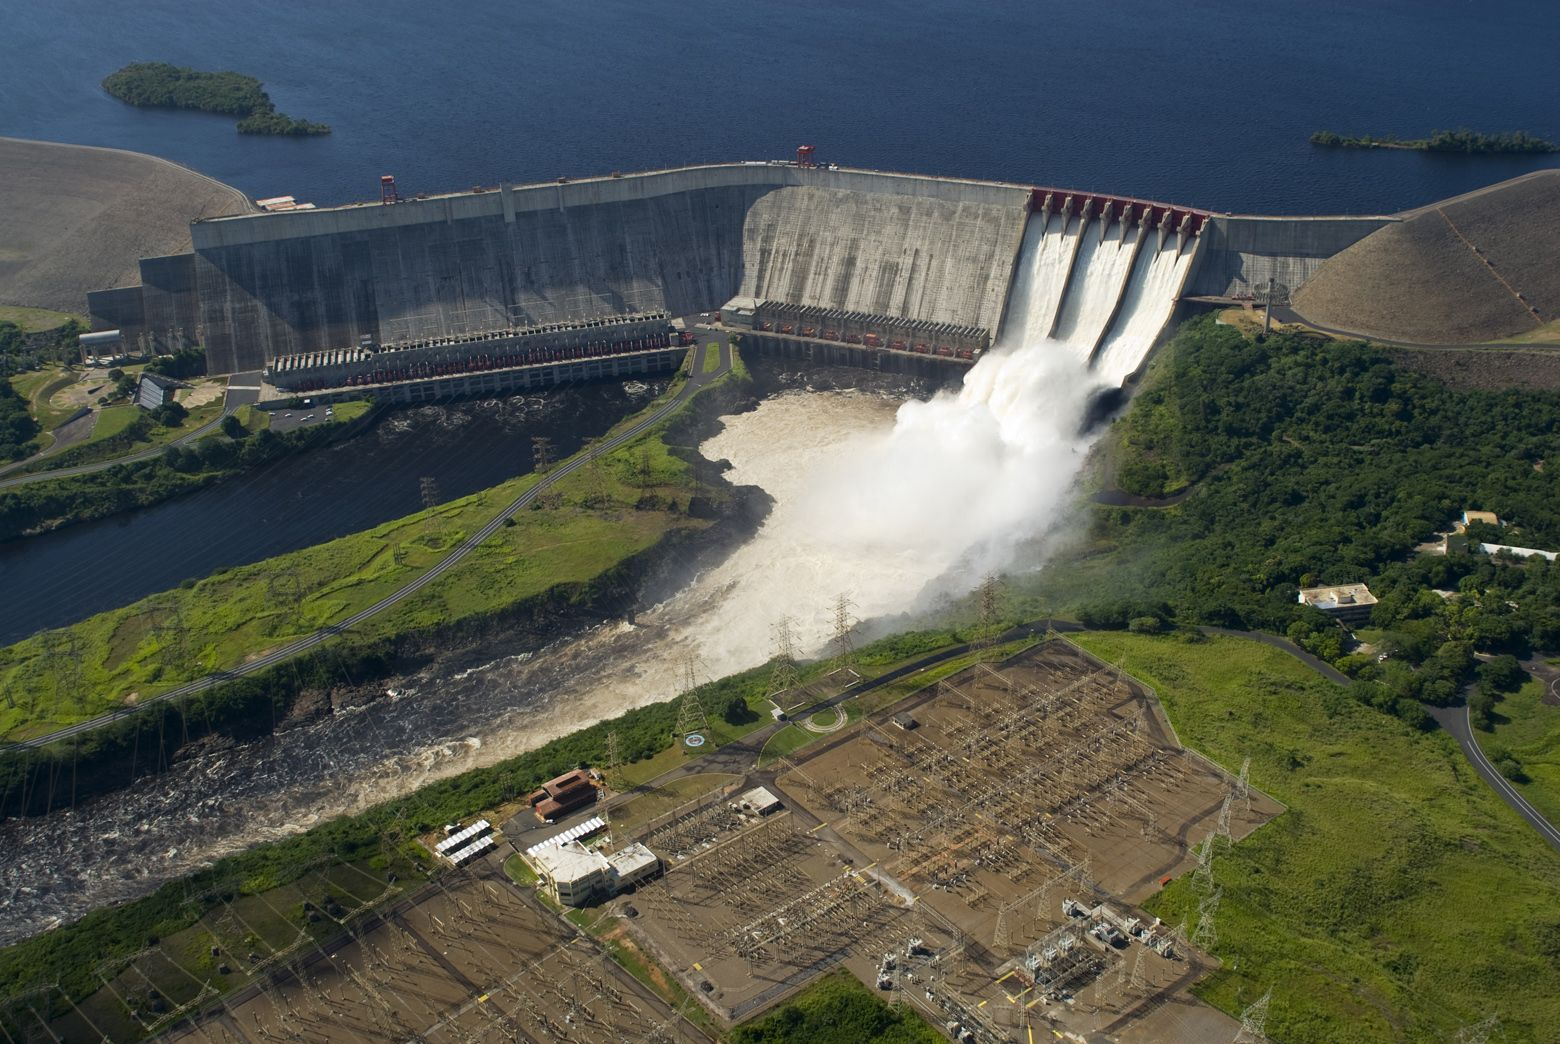 The Guri Dam is a concrete gravity and embankment dam in Bolívar State, Venezuela on the Caroni River. Its official name is Central Hidroeléctrica Simón Bolívar. It is 7,426 metres long and 162 m high.